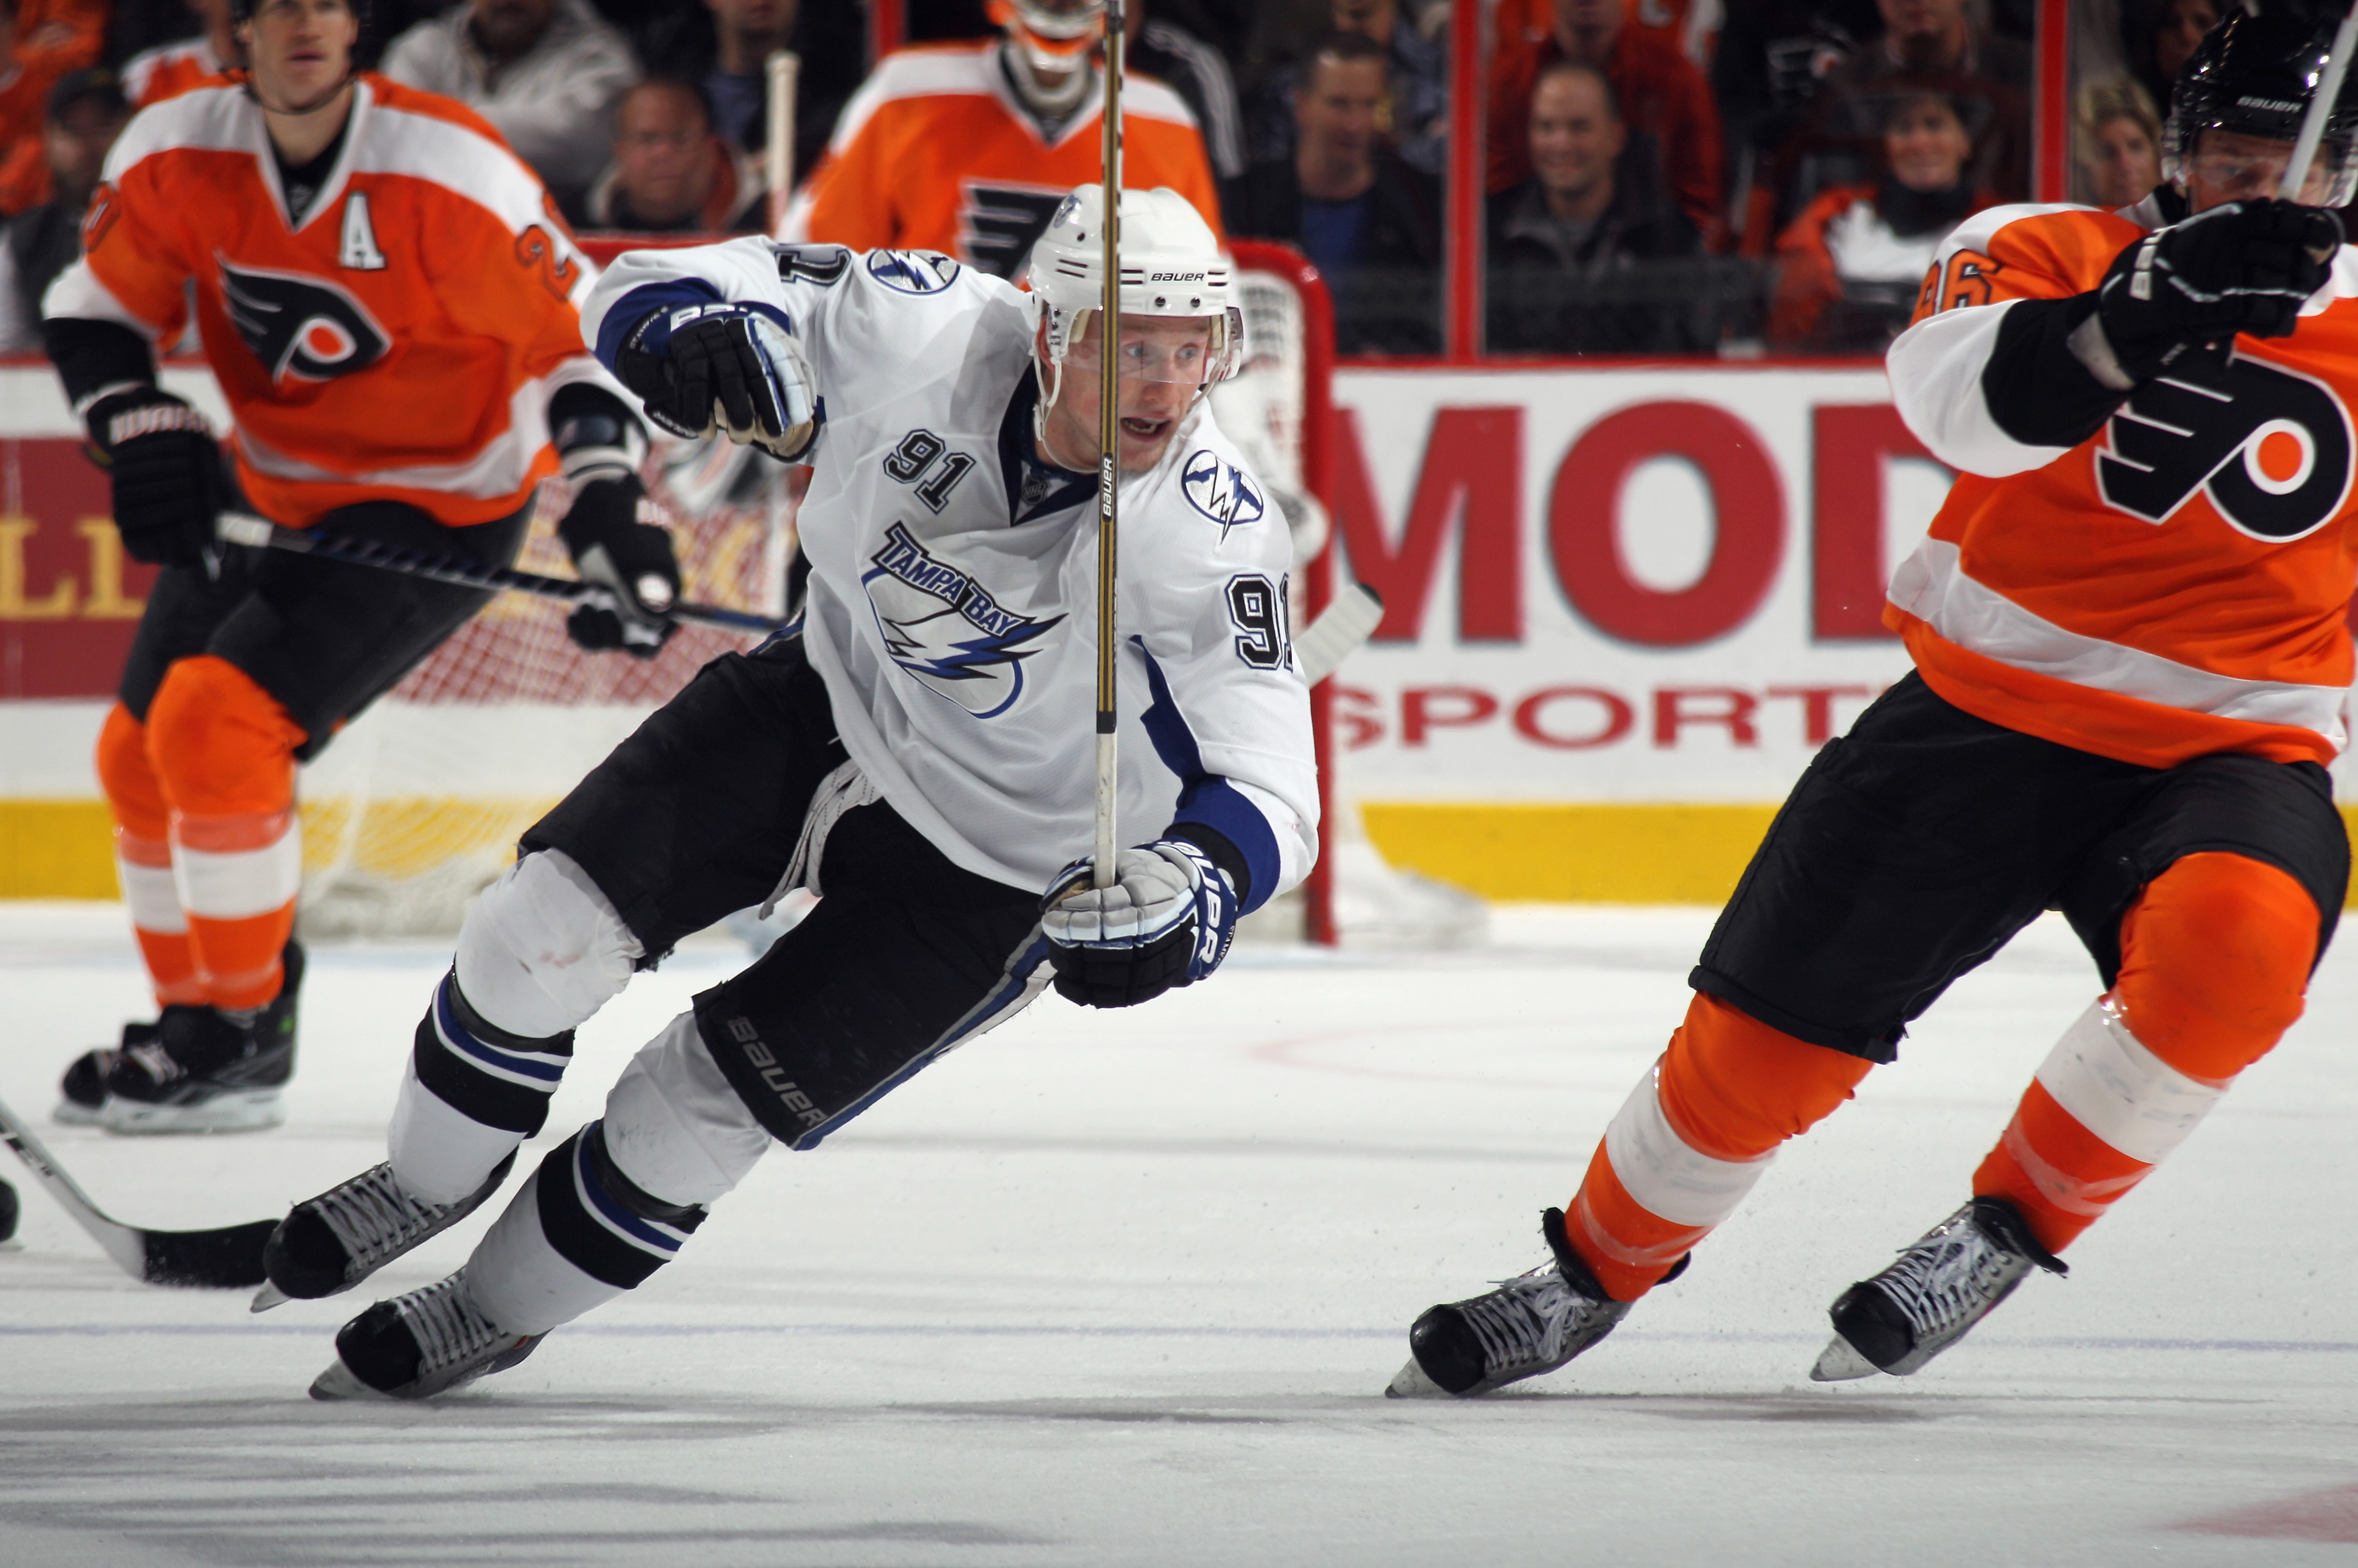 Nhl Power Rankings The Nhl S 25 Hottest Players Right Now